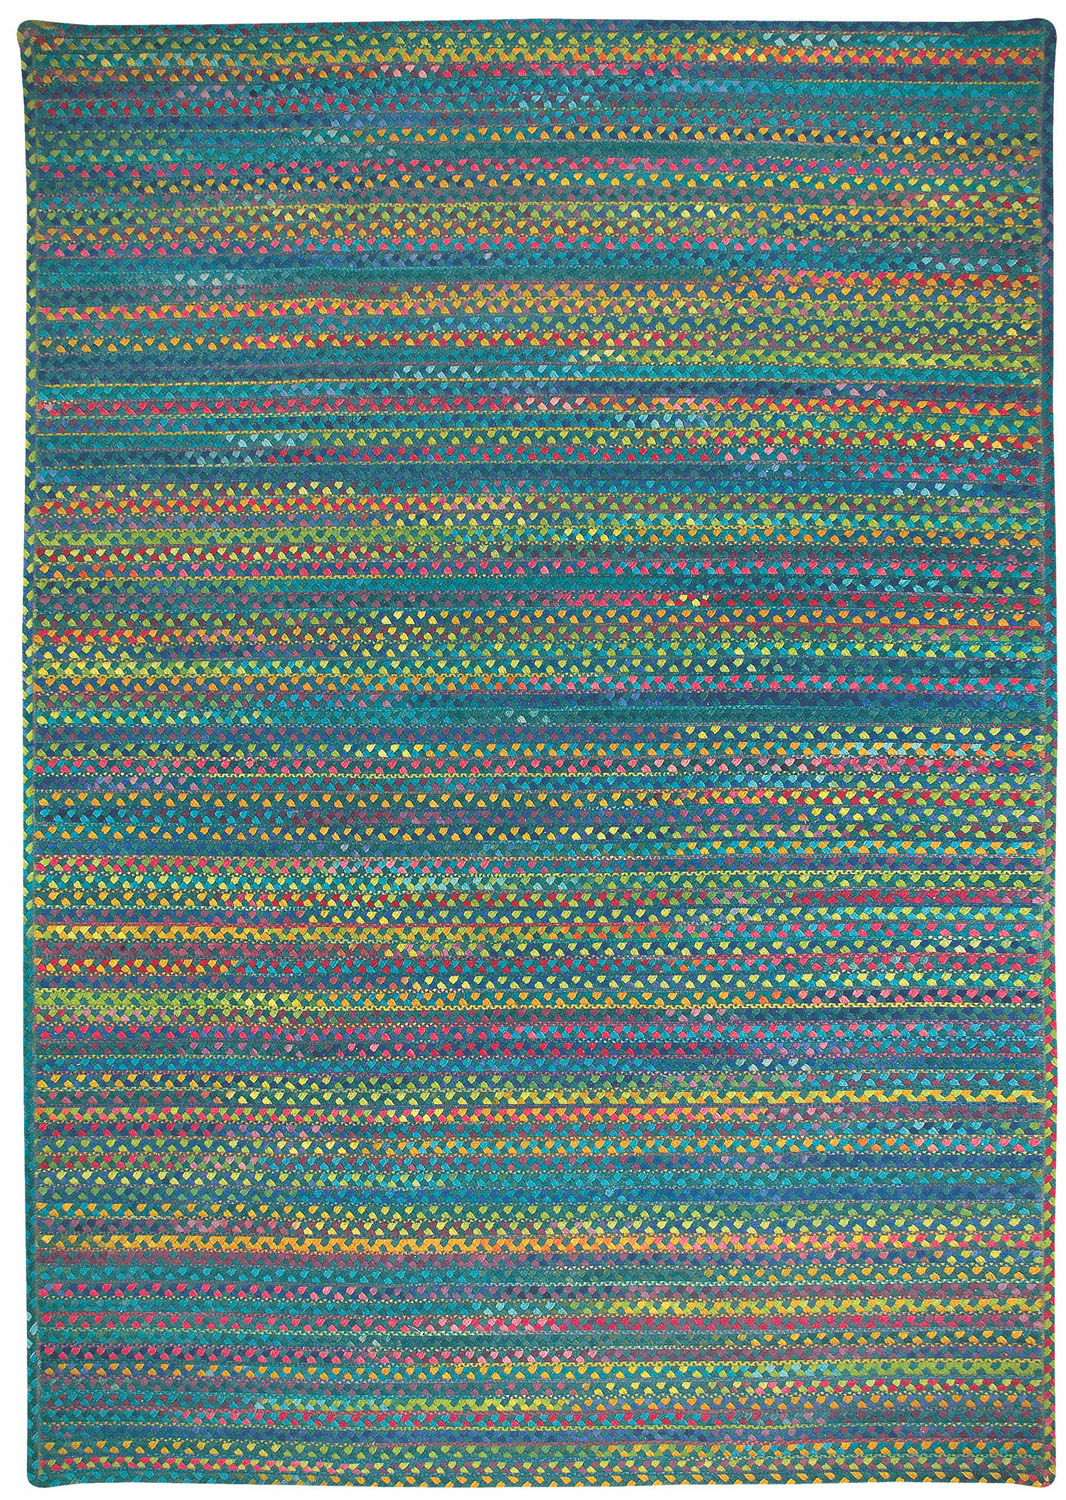 Hand-Braided Deep Green Rug